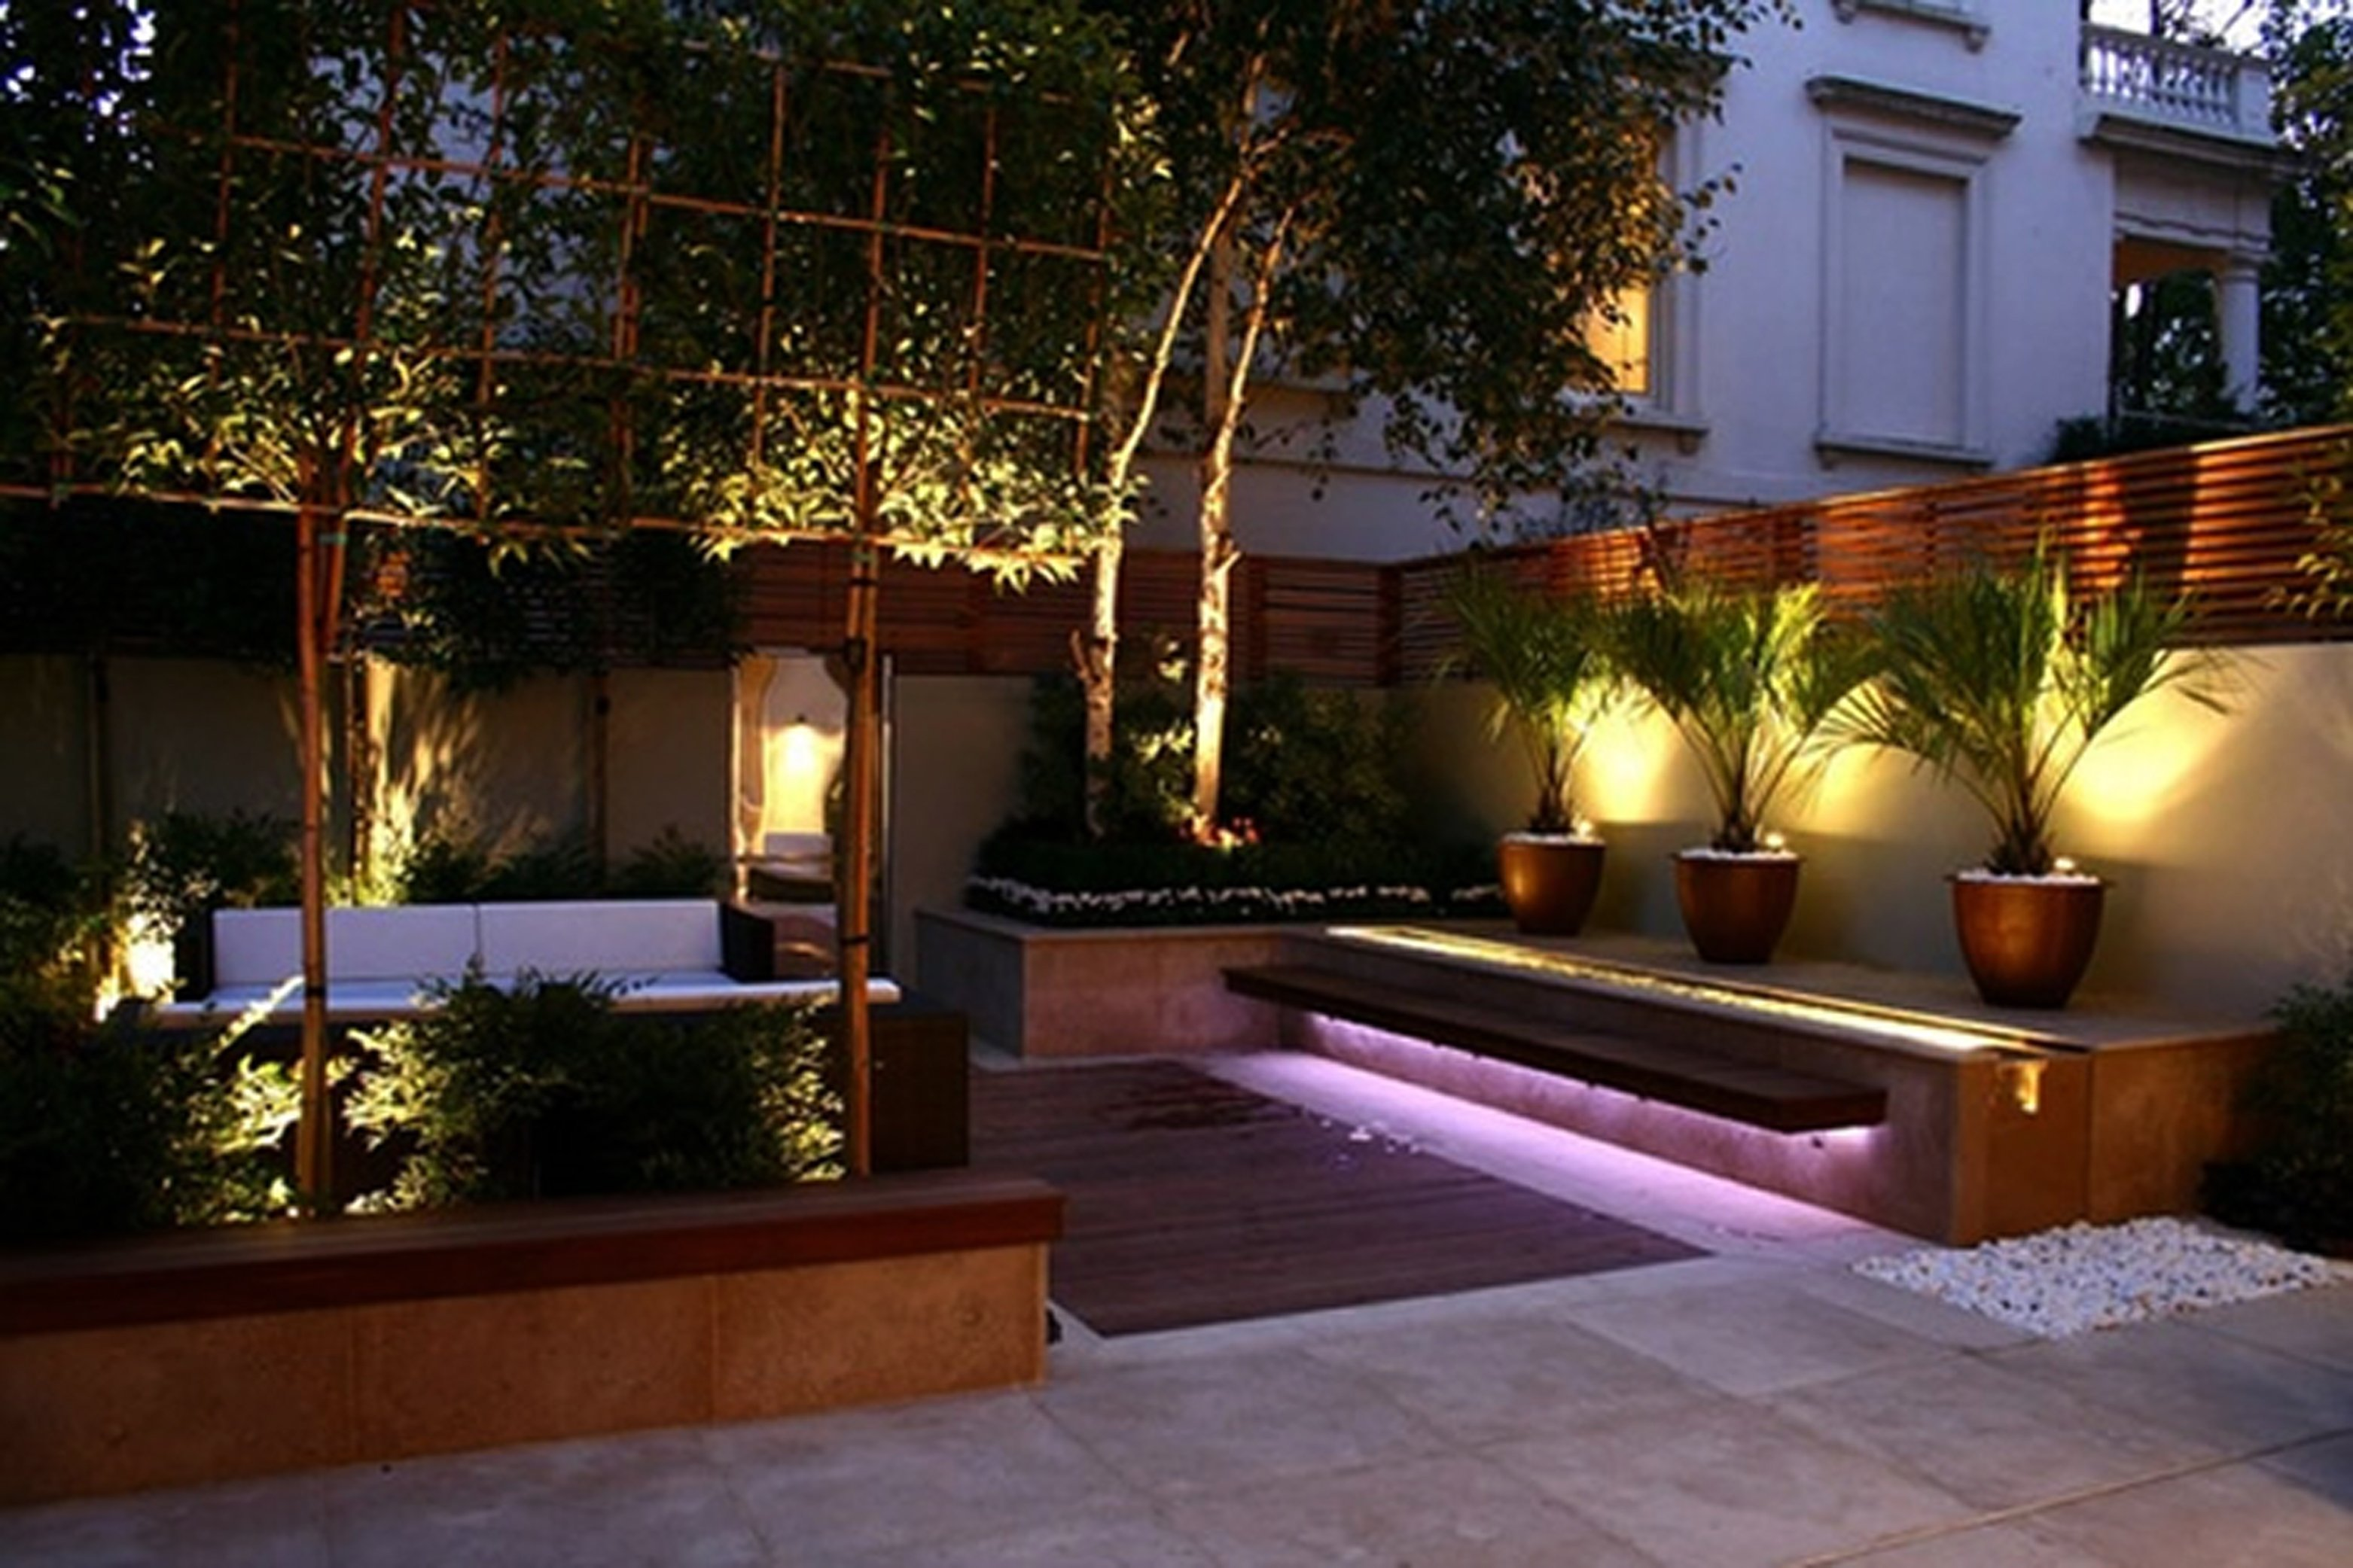 Ideas para decorar exteriores en primavera - Ideas decoracion jardines exteriores ...